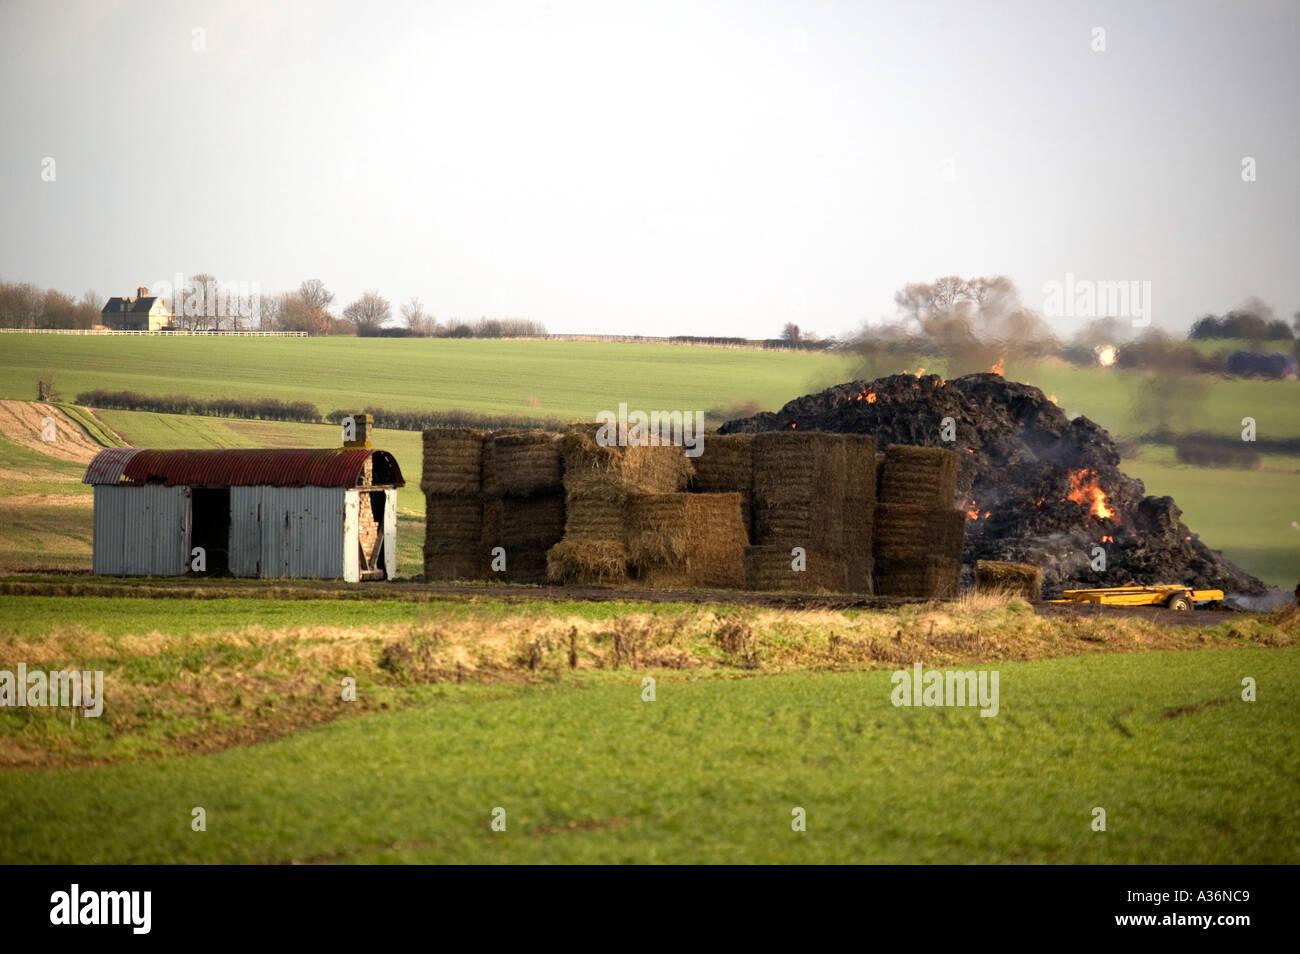 Arson Straw bales.Cambs - Stock Image